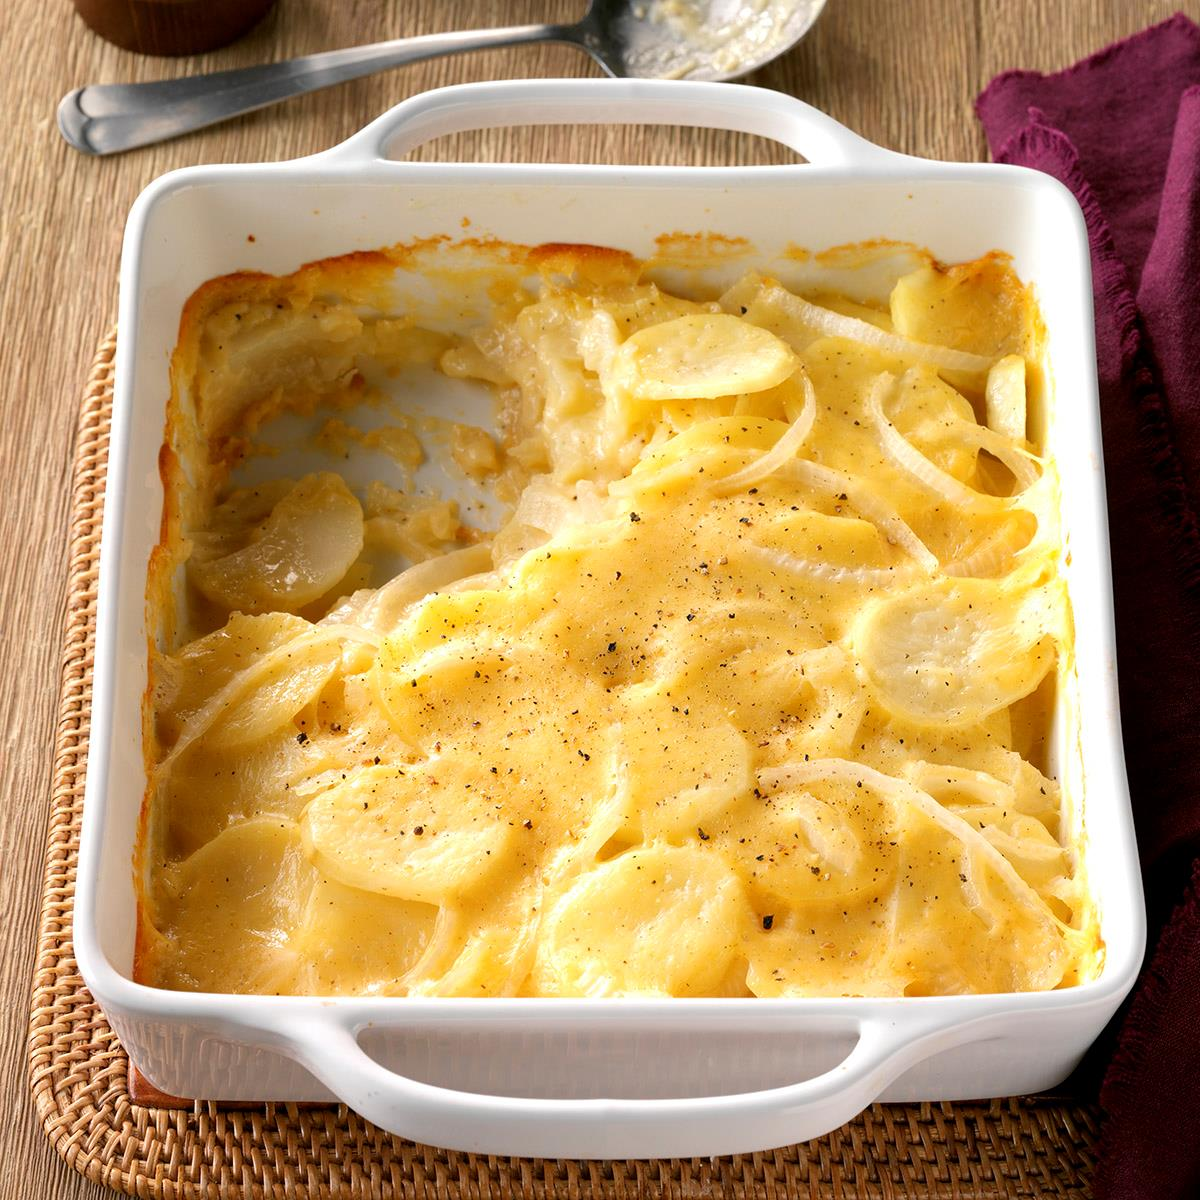 Baked ham scalloped potatoes clipart graphic transparent download Never-Fail Scalloped Potatoes graphic transparent download